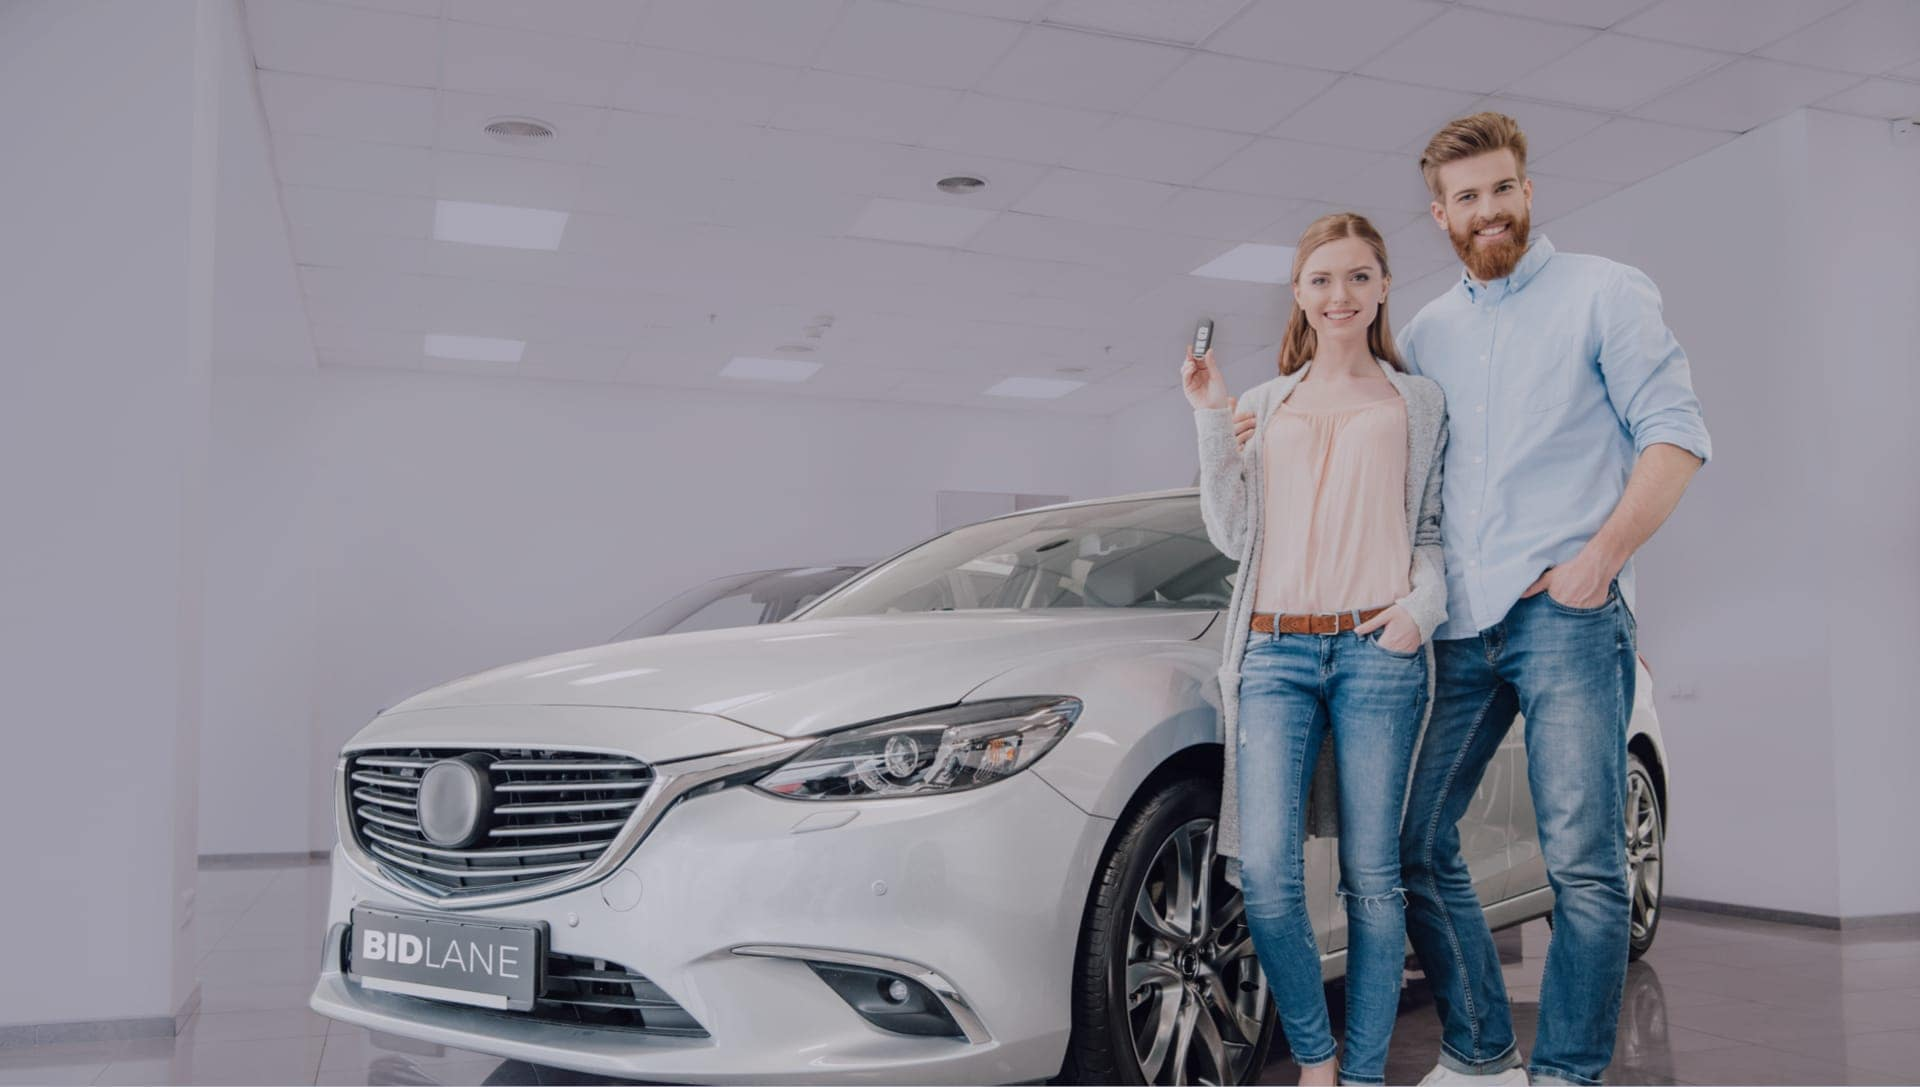 Couple Standing Next to White Sedan in showroom